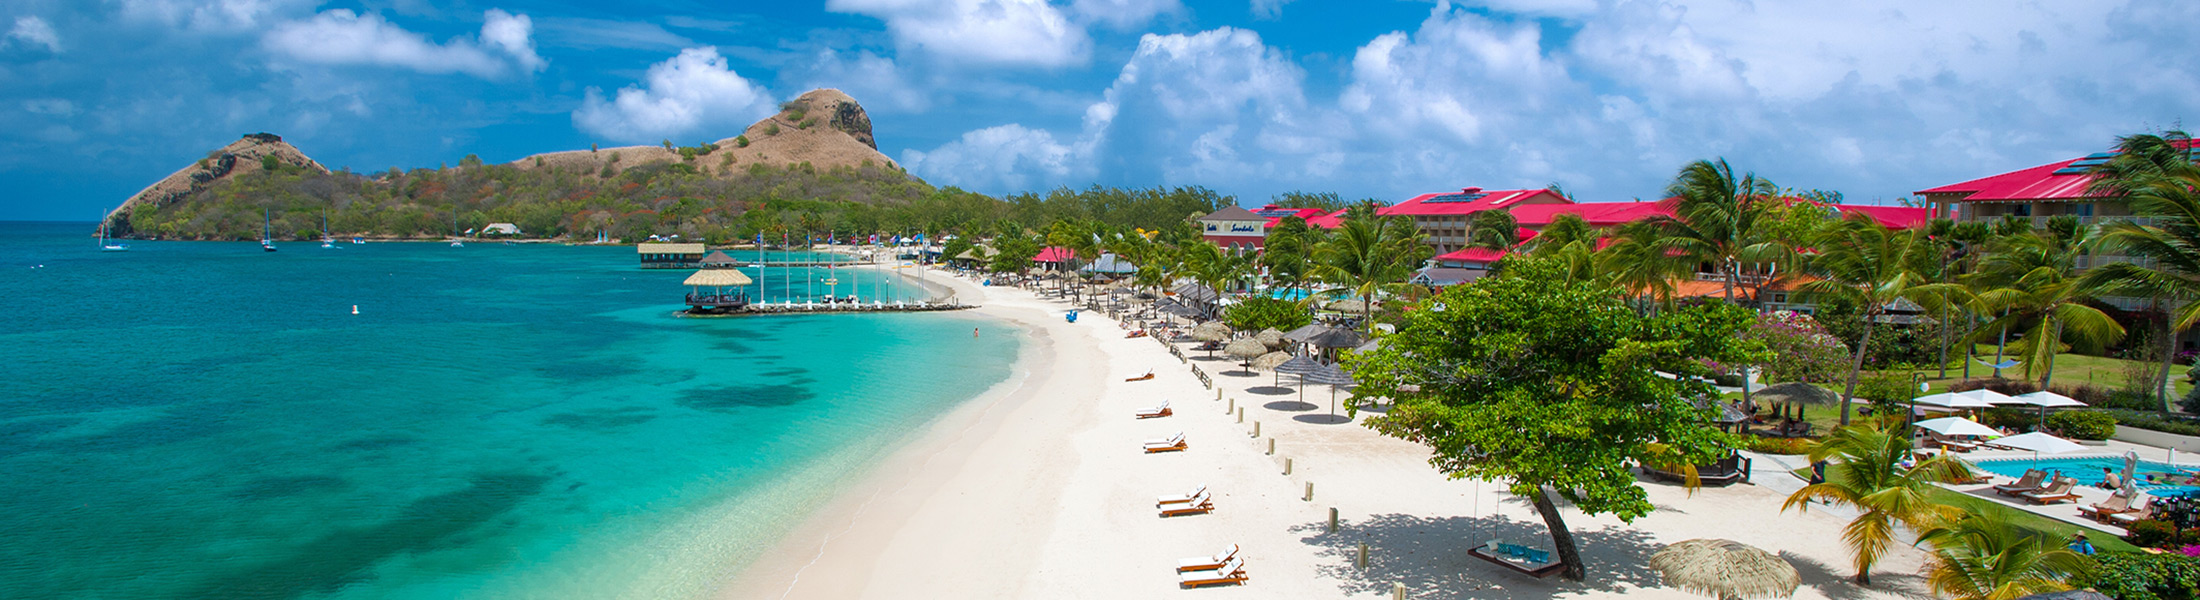 Aerial view of the beach at Sandals Grande St Lucian